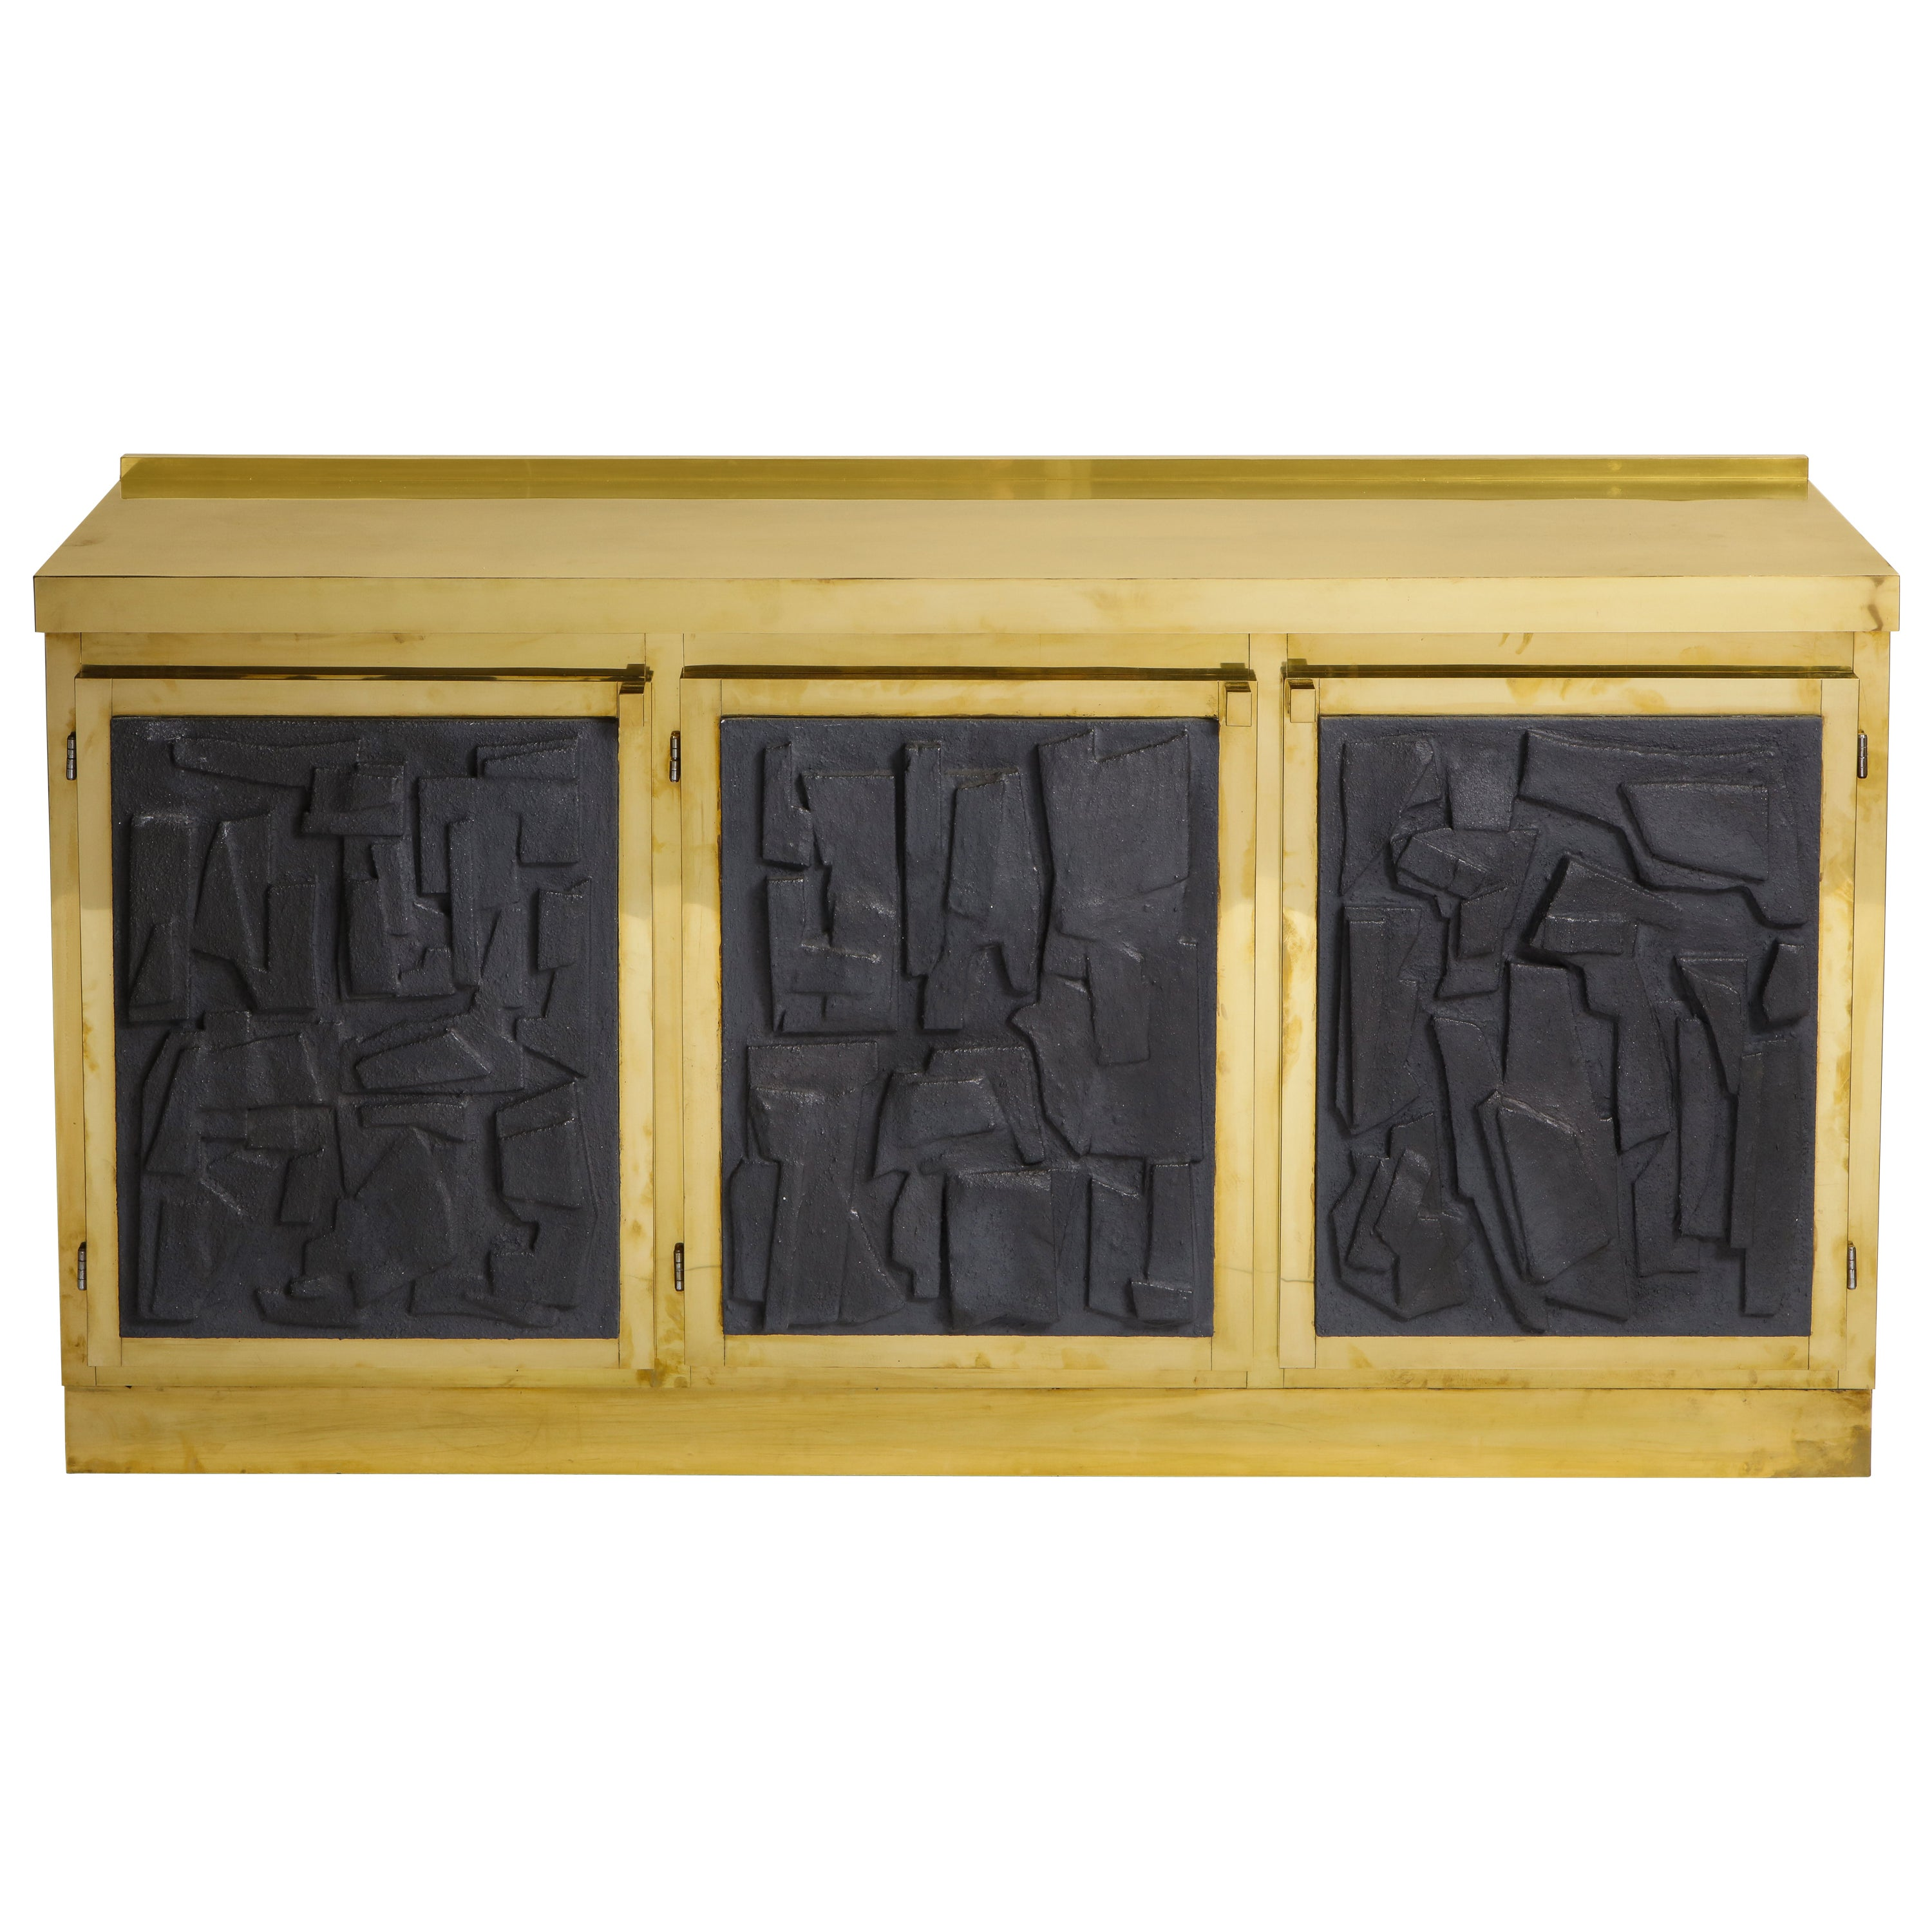 Brass and Black Bespoke Brutalist Style Sideboard or Credenza, Italy, 2019